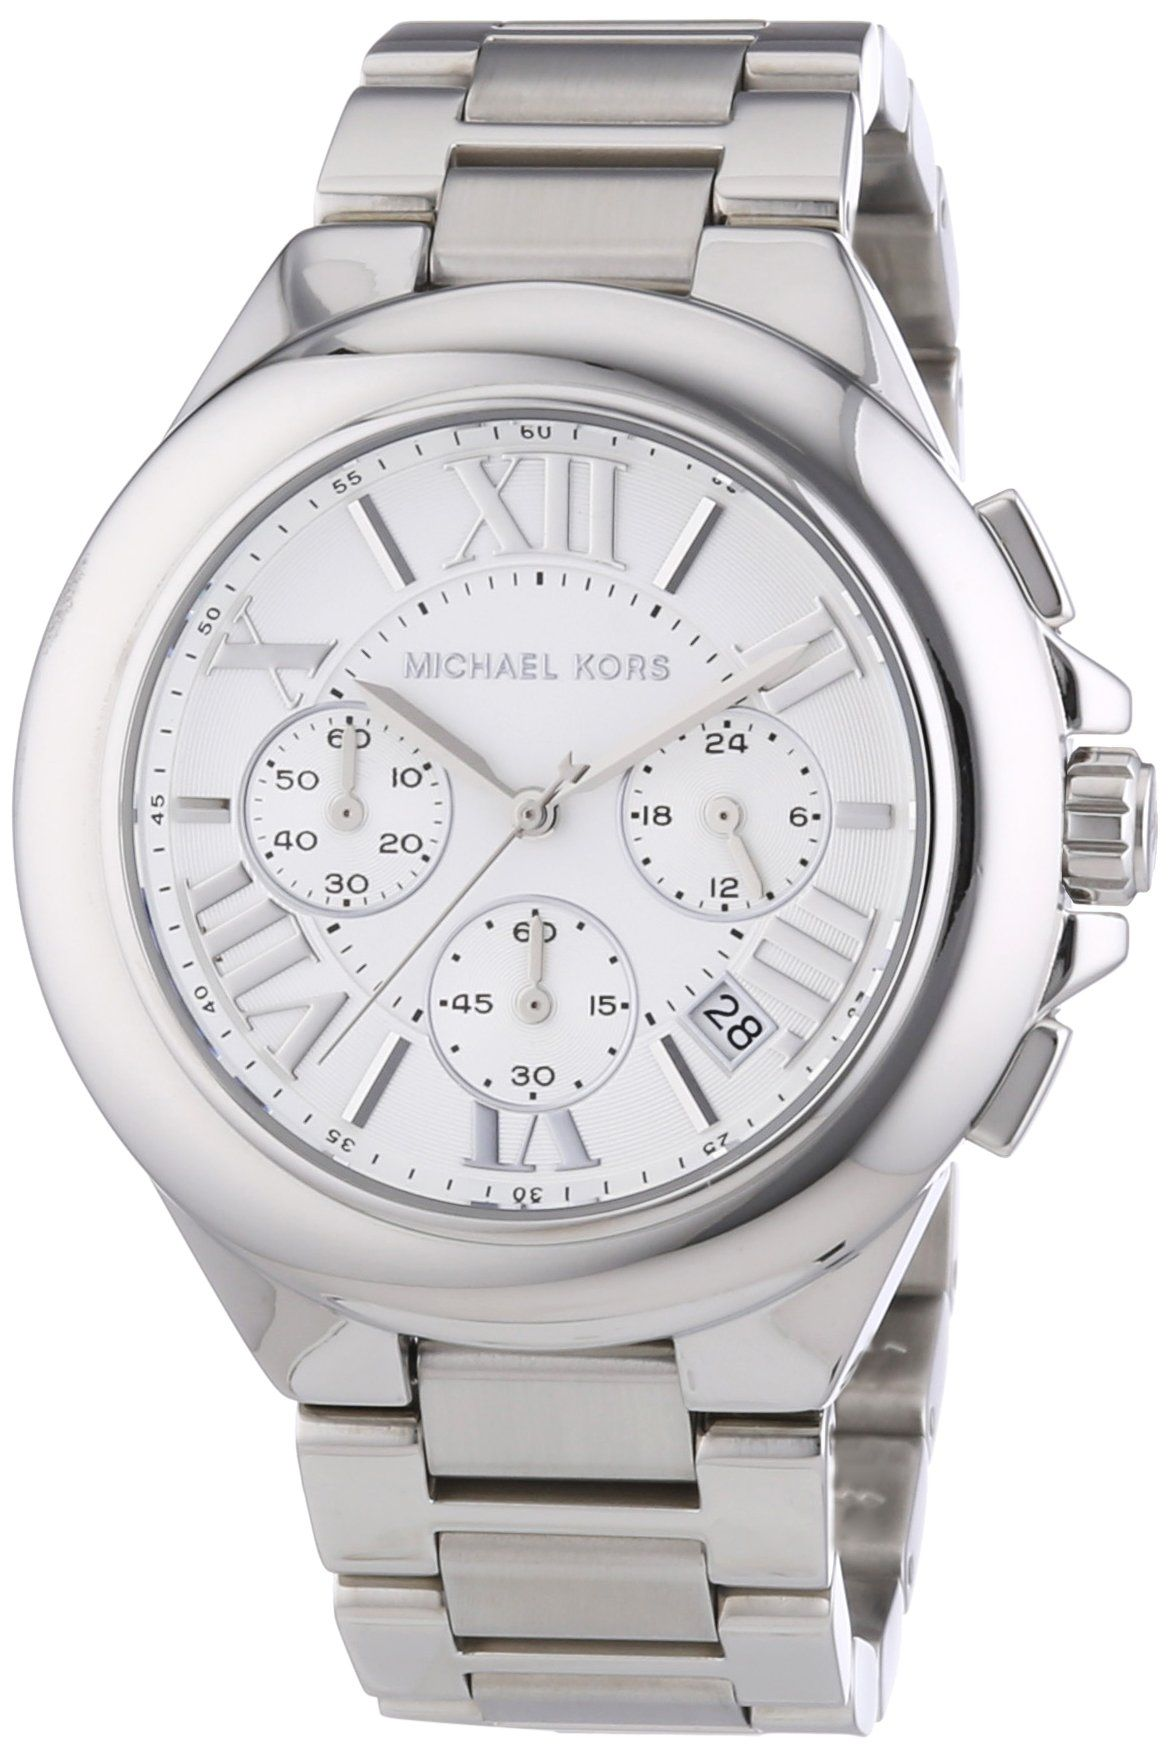 4cd055f6cab3 Michael Kors MK5719 Women s Chronograph Camille Stainless Steel Bracelet  Silver Watch  Michael Kors  Watches